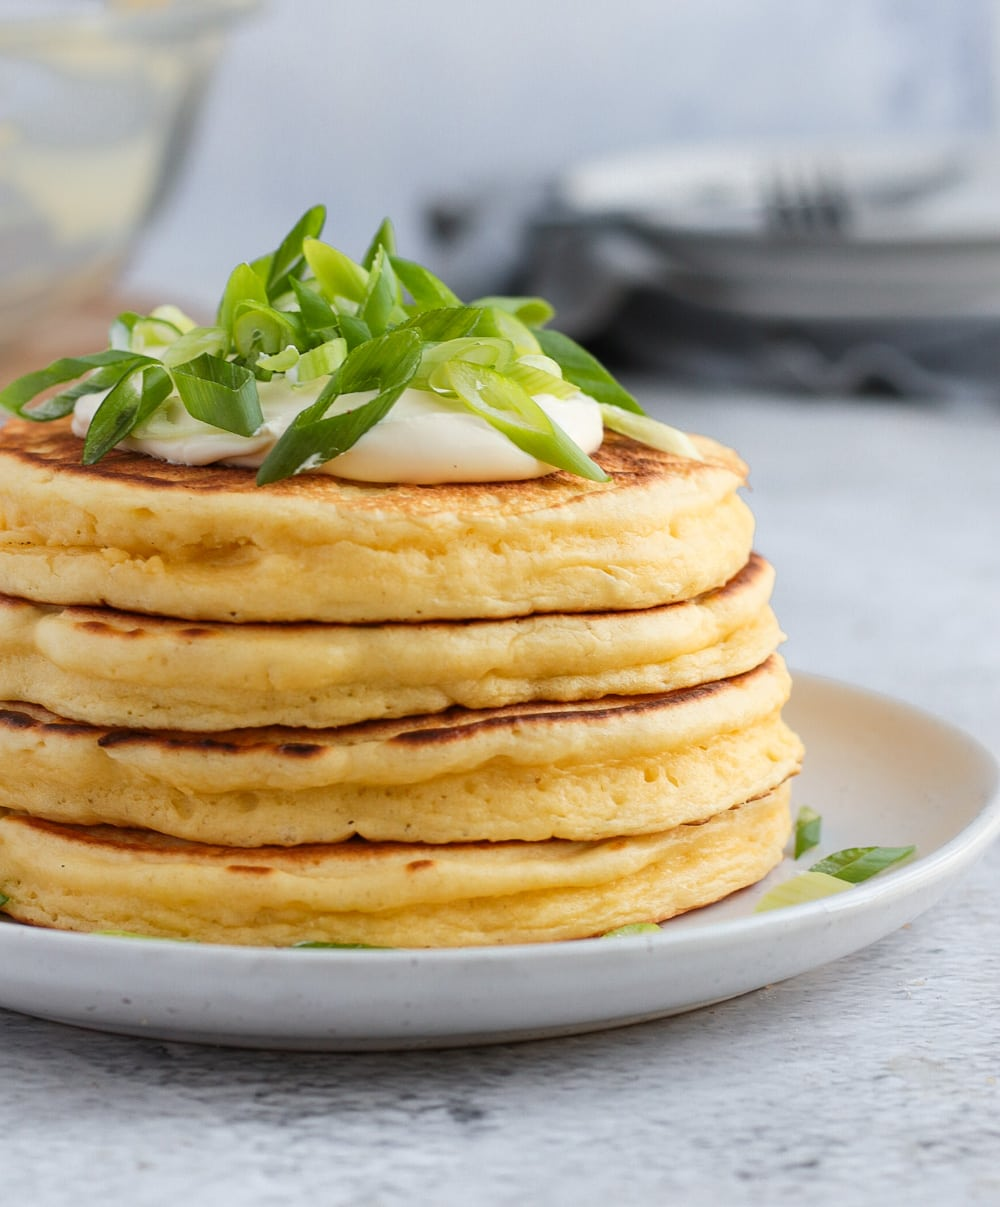 Side view on the stack of cheese pancakes.